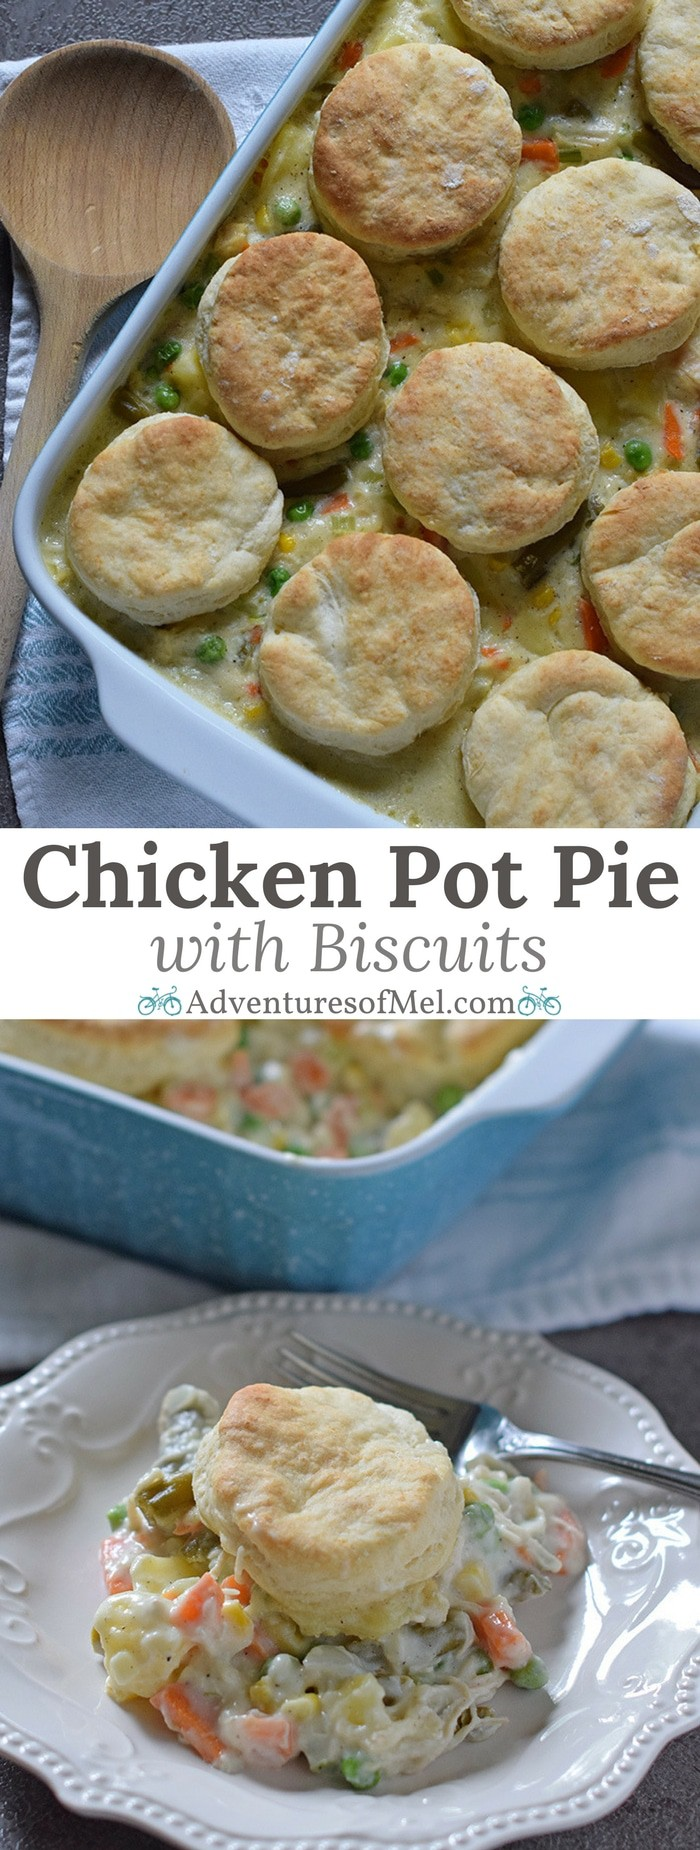 One of my favorite dinner recipes! Chicken Pot Pie with Grandma's biscuits, filled with a medley of vegetables in a mouthwatering creamy sauce, seasoned with sage. Ultimate comfort food dinner recipe.